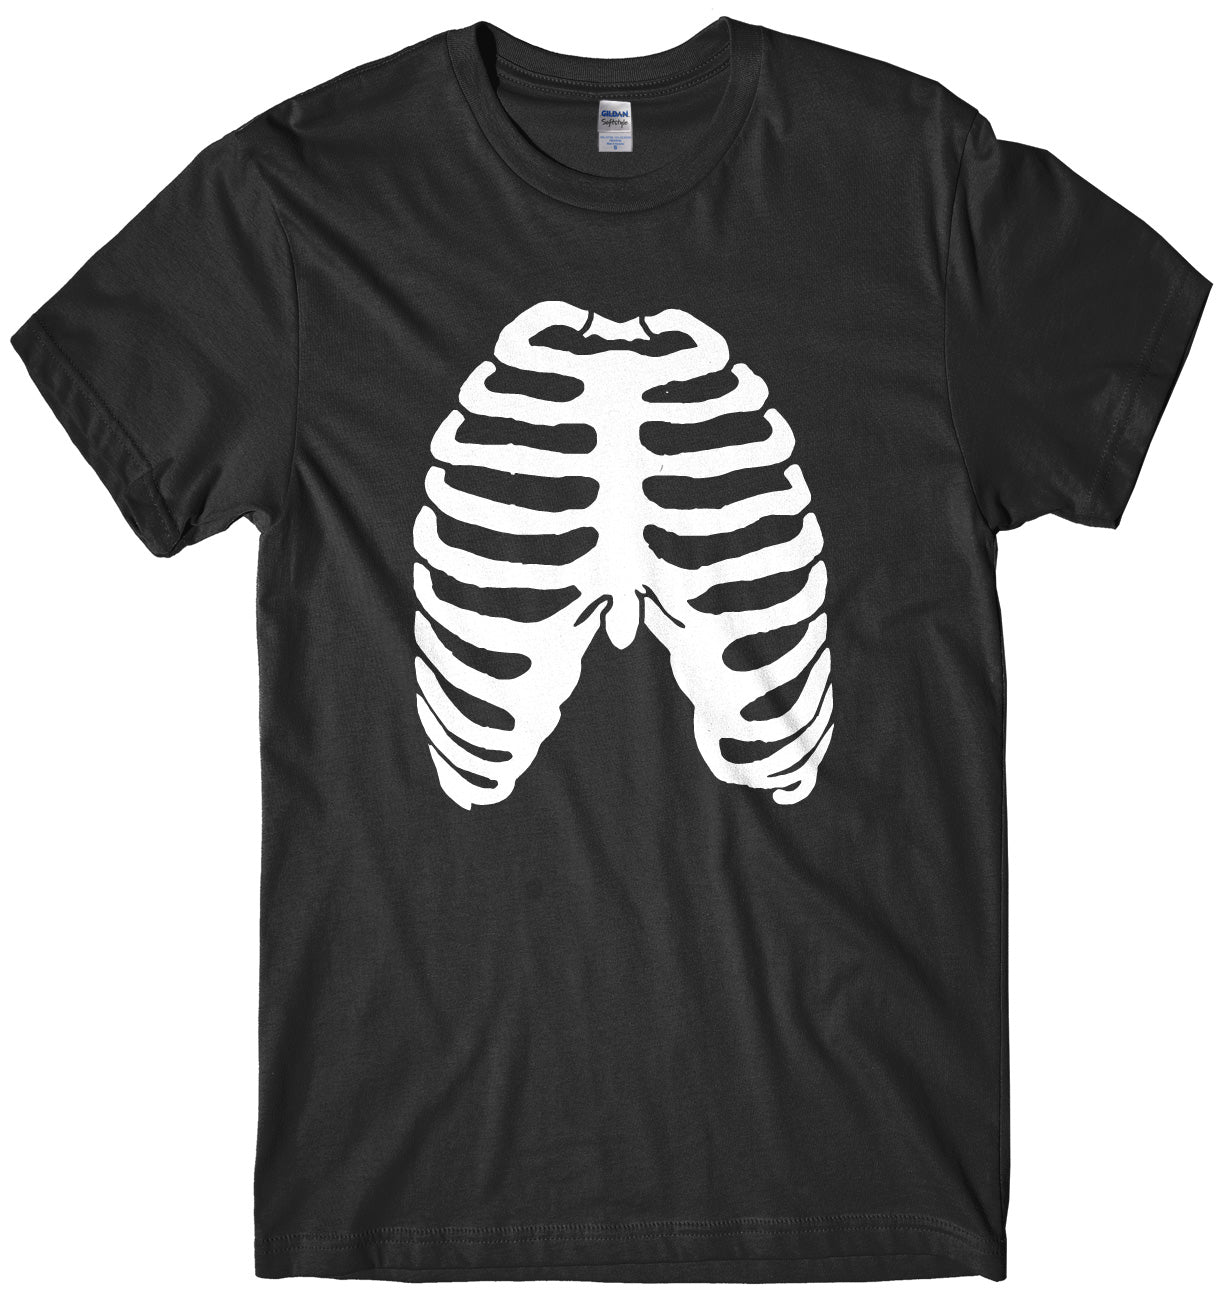 Skeleton Ribs Ribcage Design Mens Unisex Halloween T-Shirt